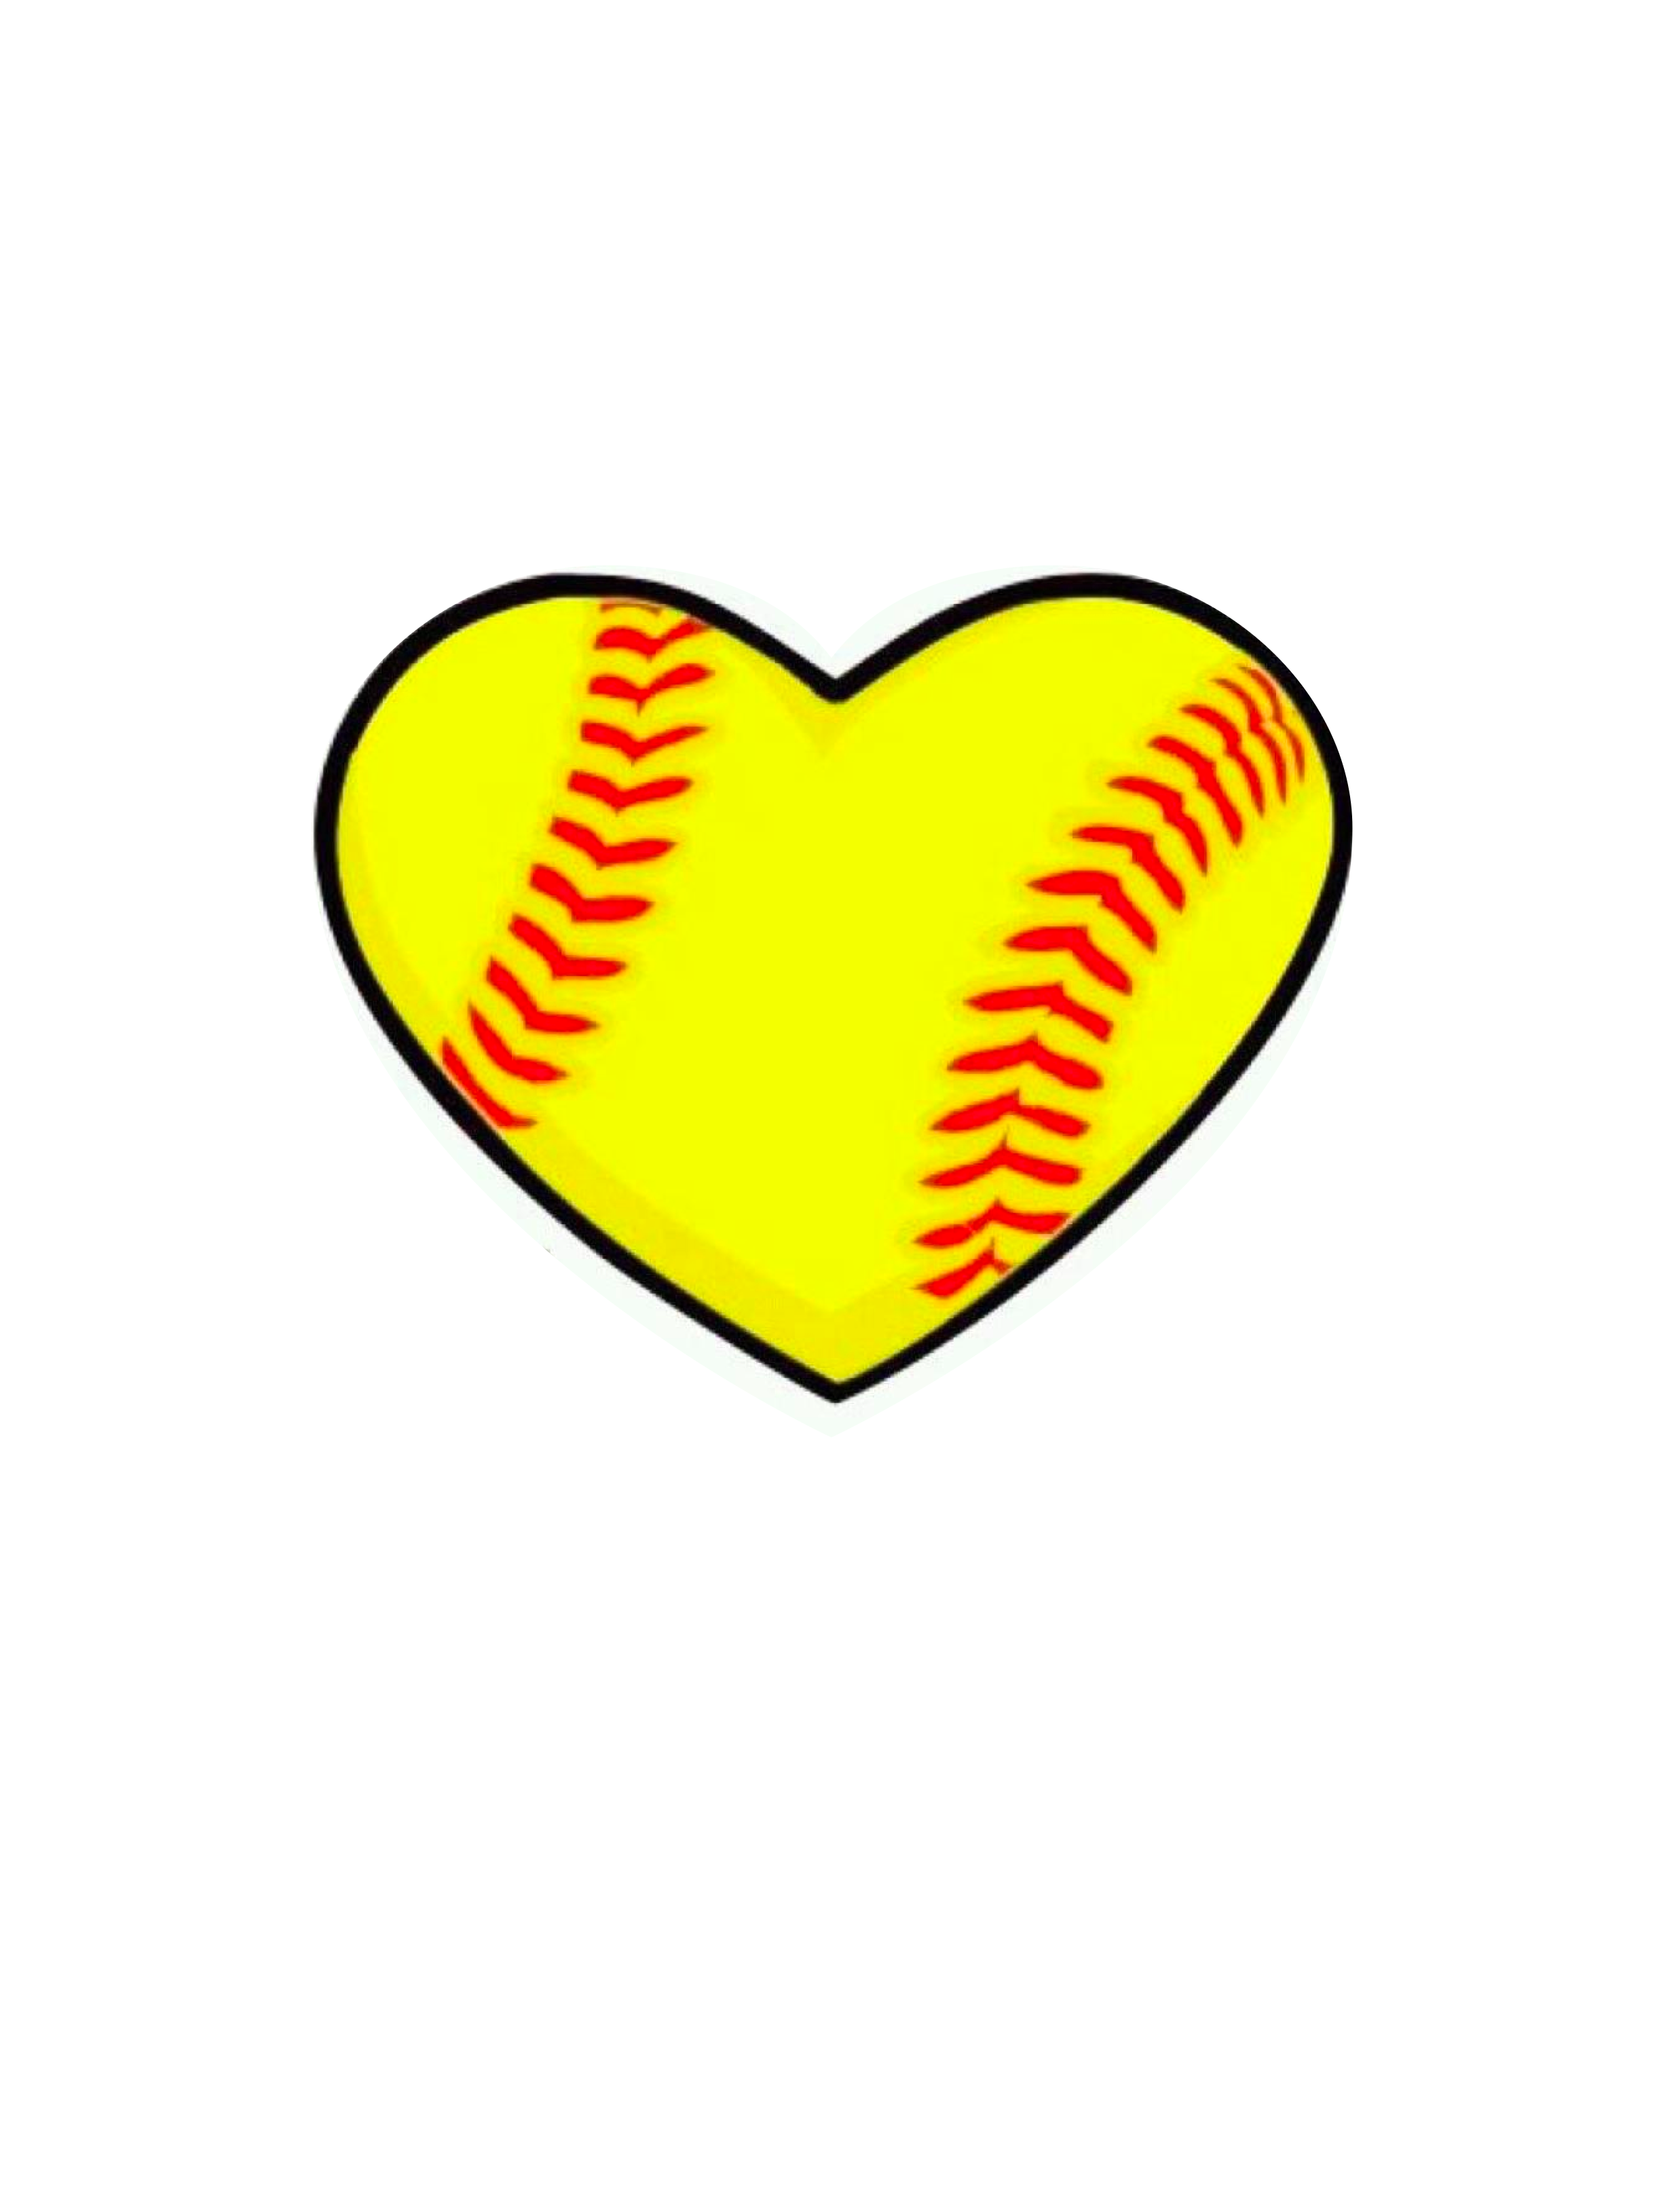 Softball Free Clipart.